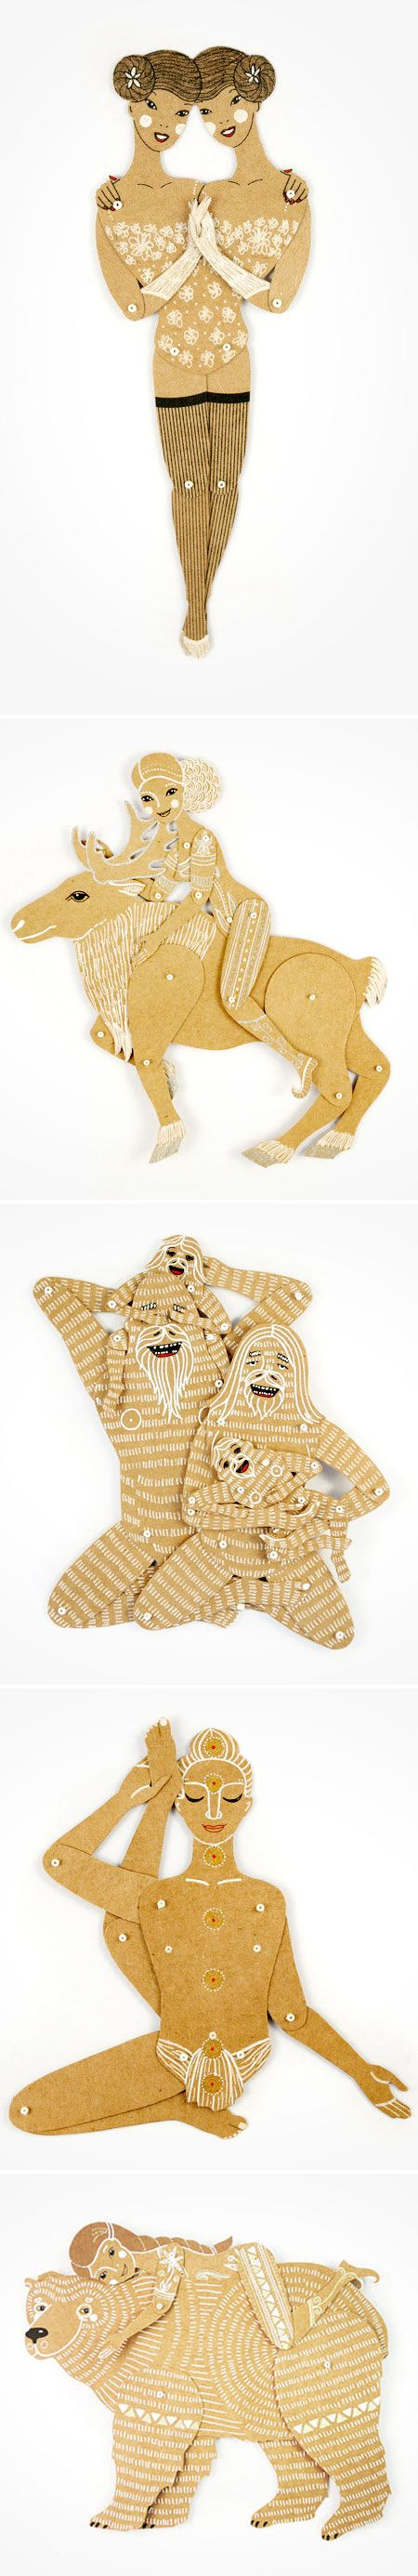 Maria Dubrovskaya ~ paper dolls (these are awesome!)